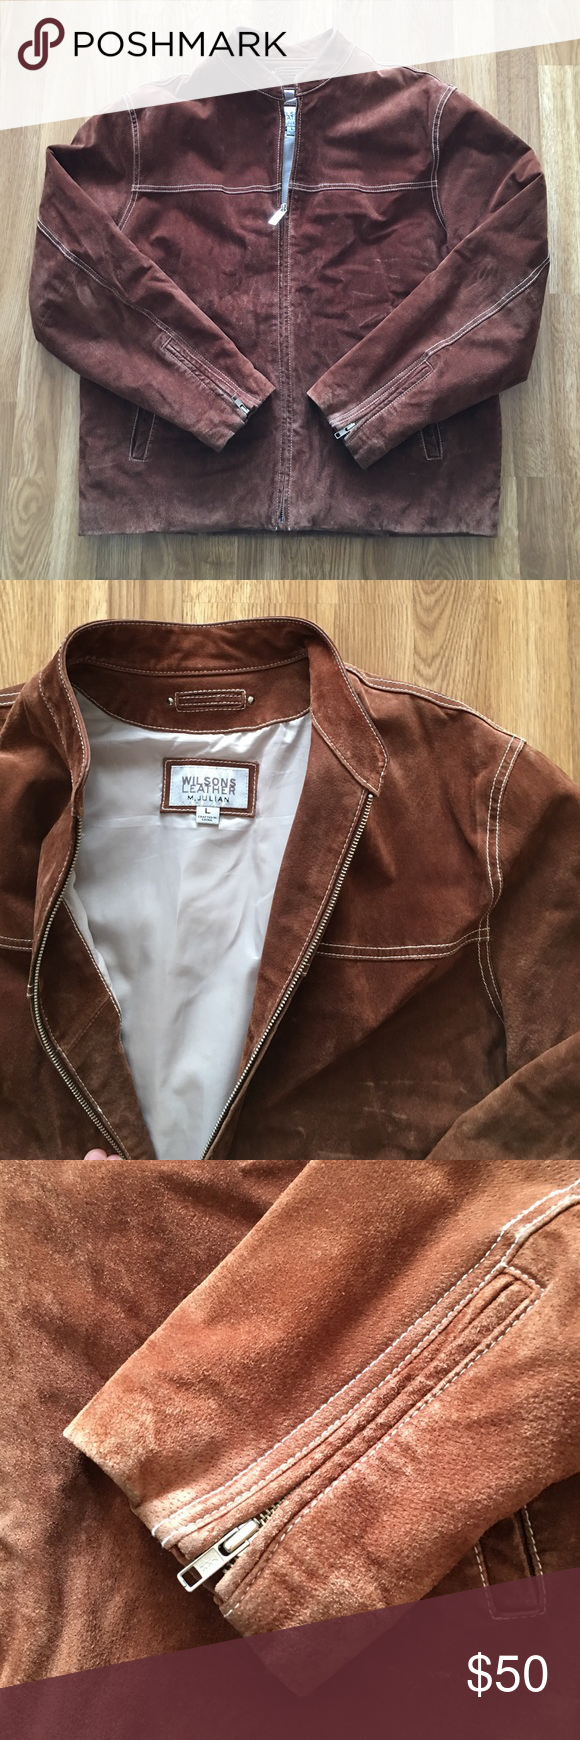 Men's Wilson Leather Suede Jacket This jacket is great